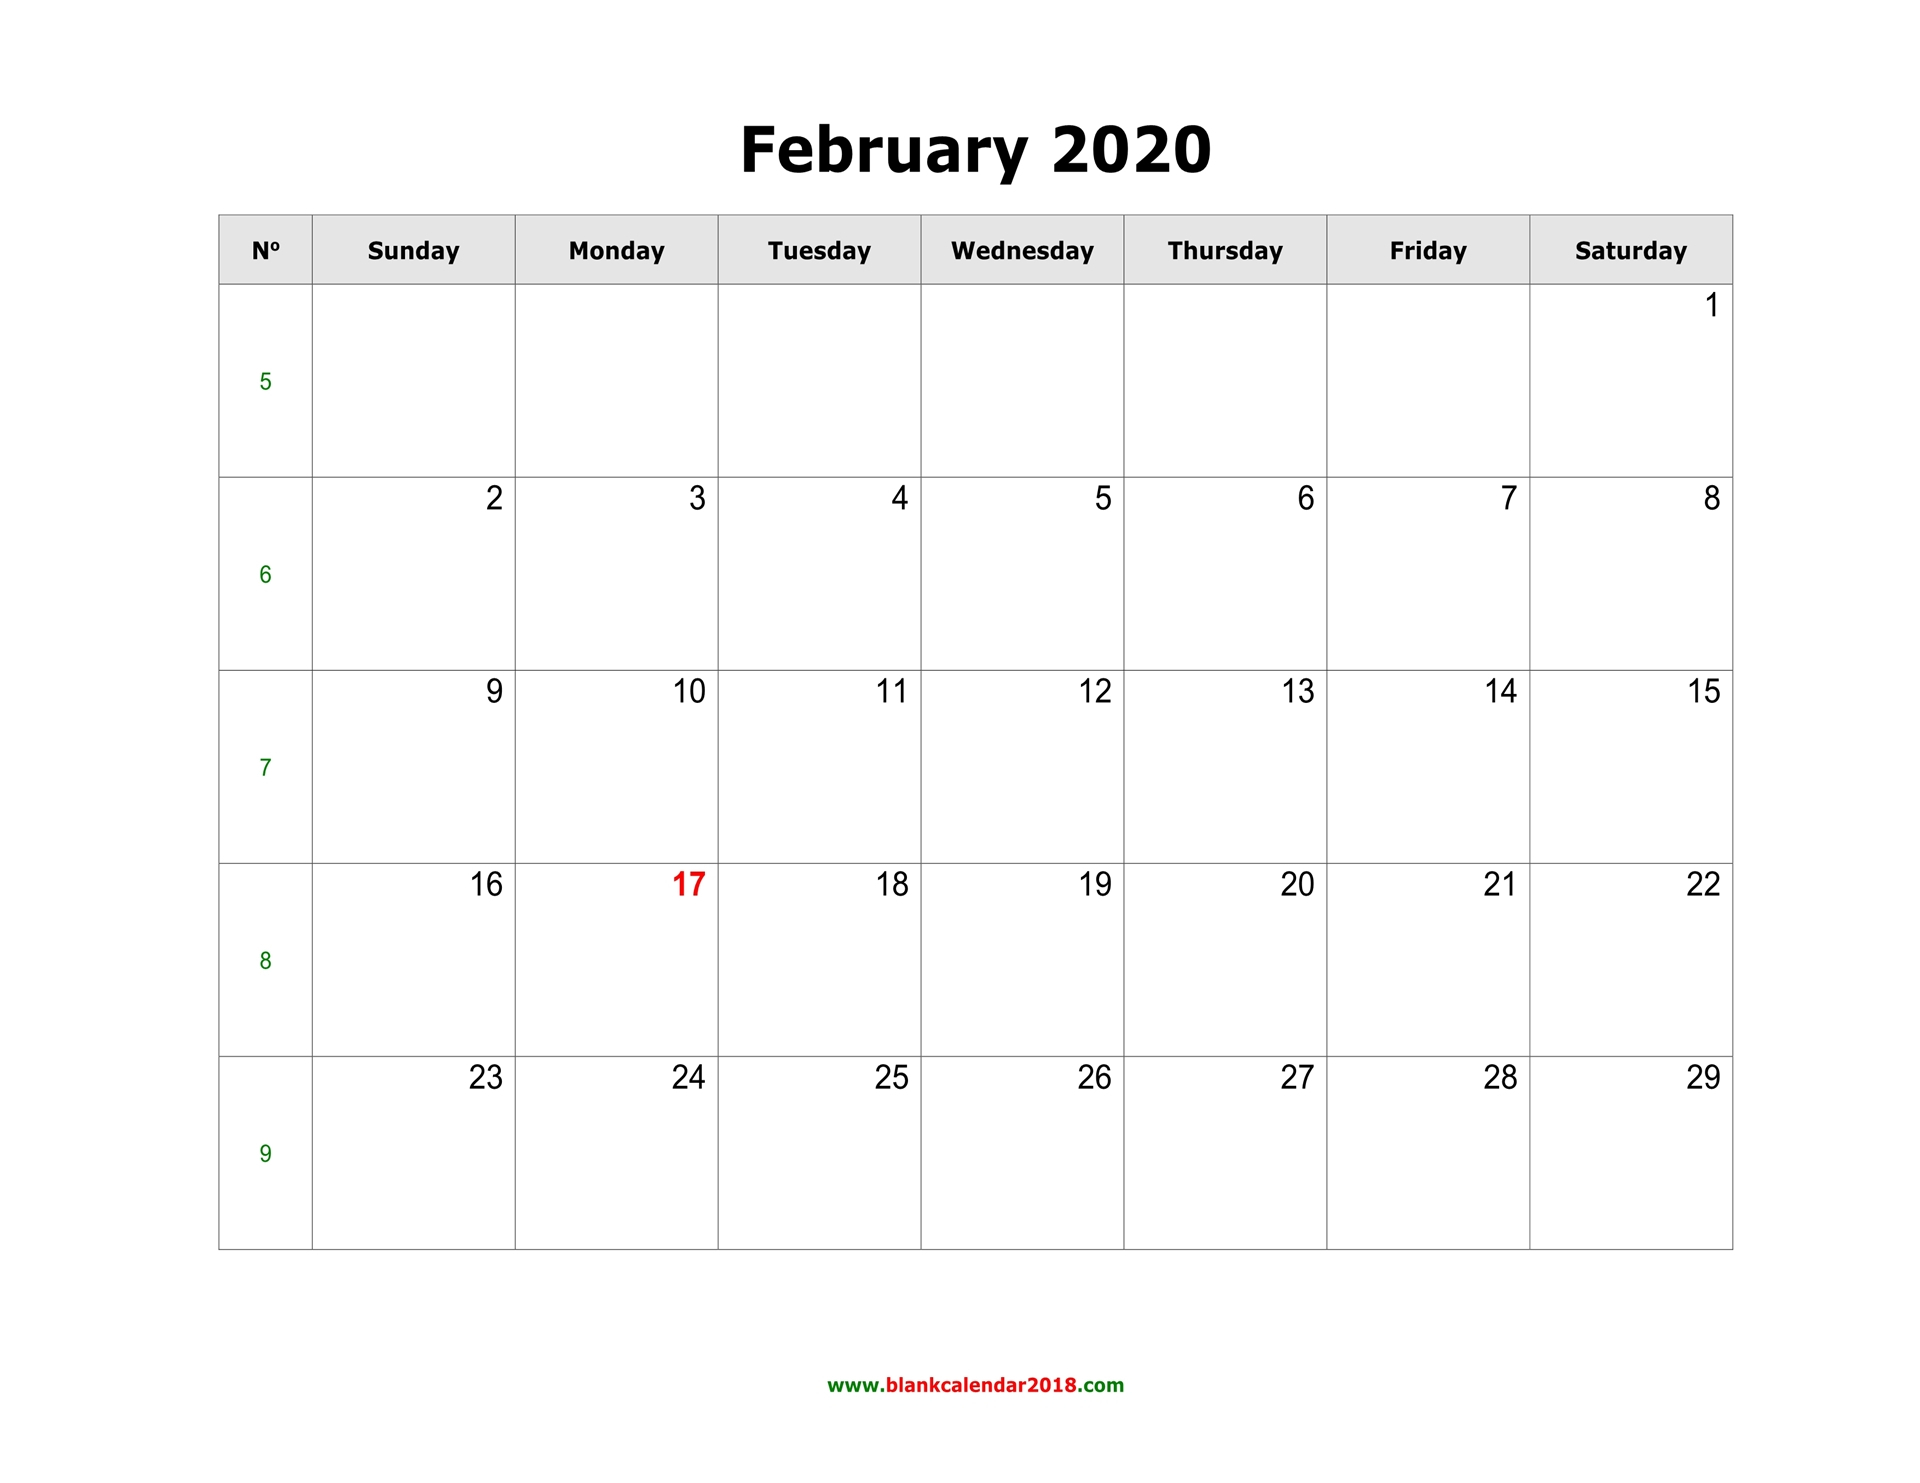 Blank Calendar For February 2020 within Wincalendar July 2020